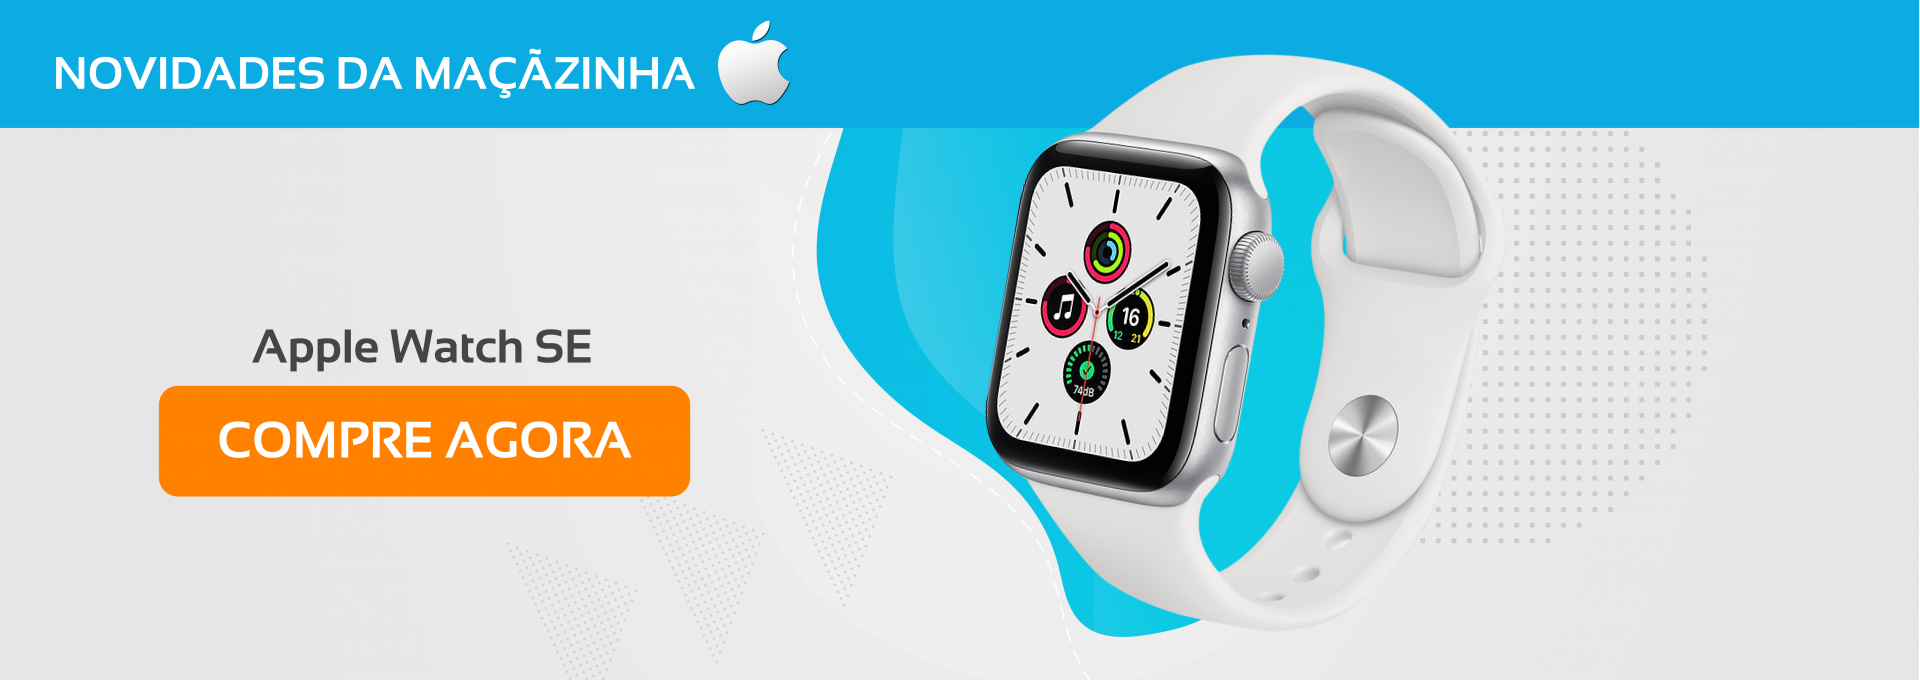 Pré-venda Apple Watch SE